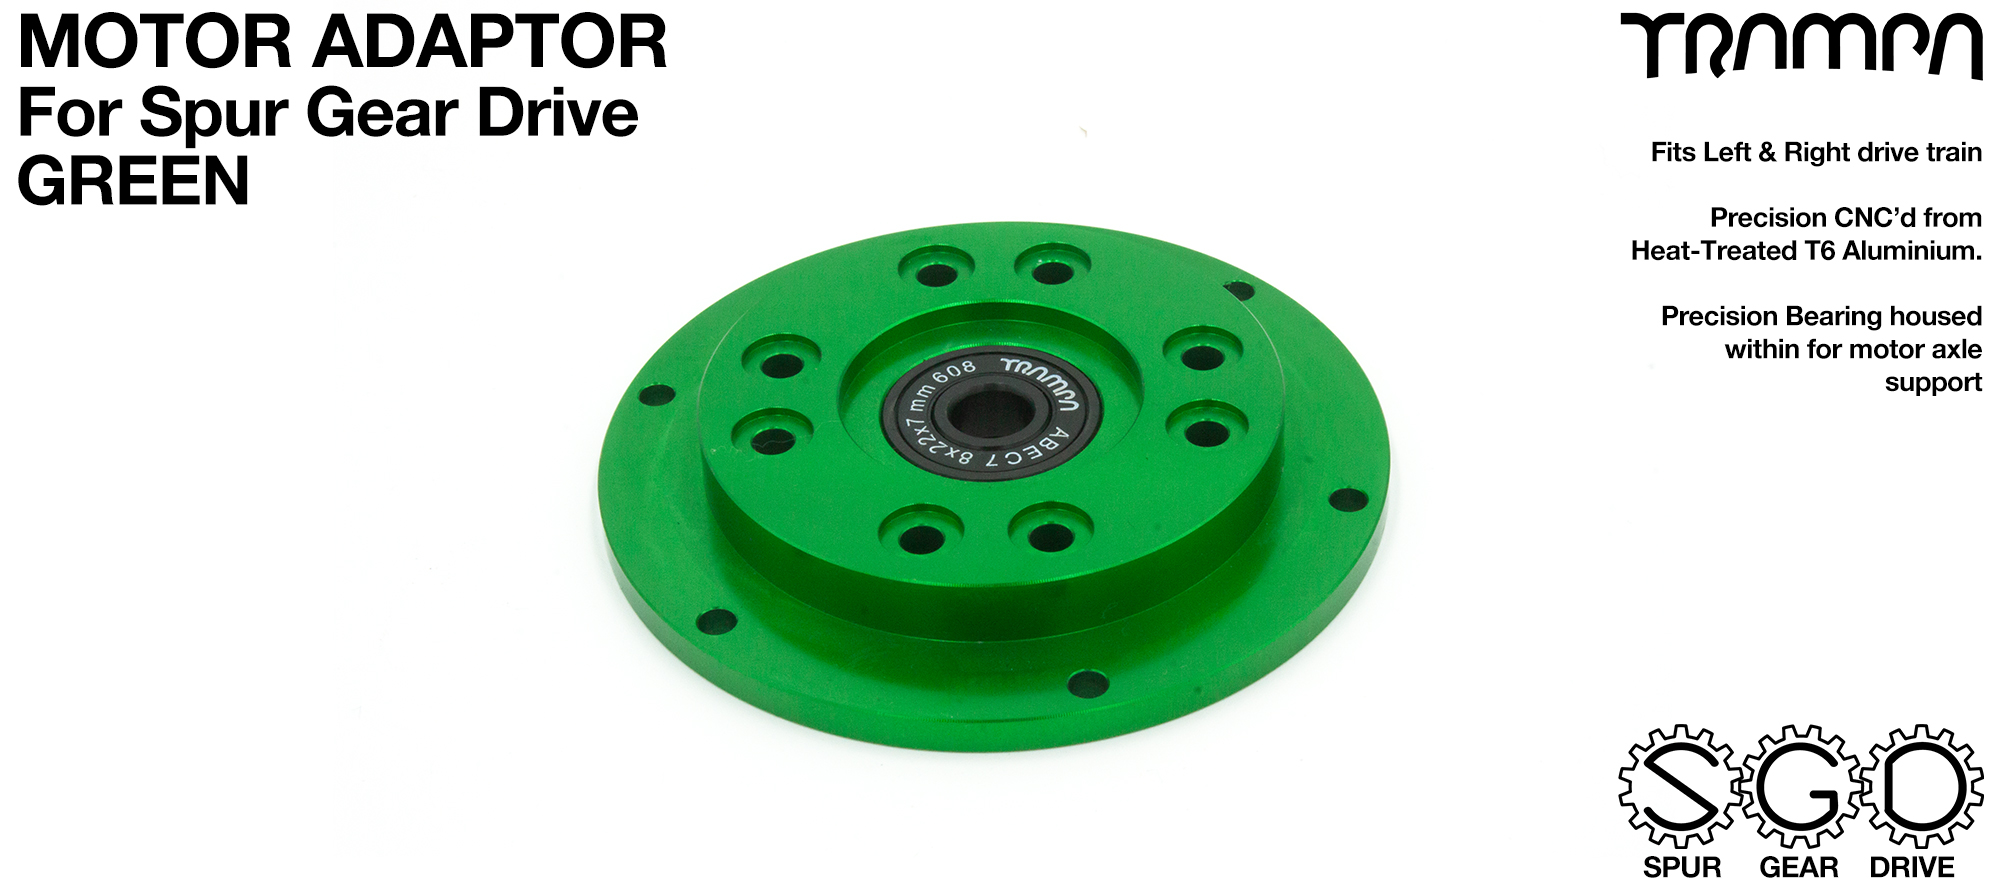 SPUR Gear Drive Motor Adaptor GREEN